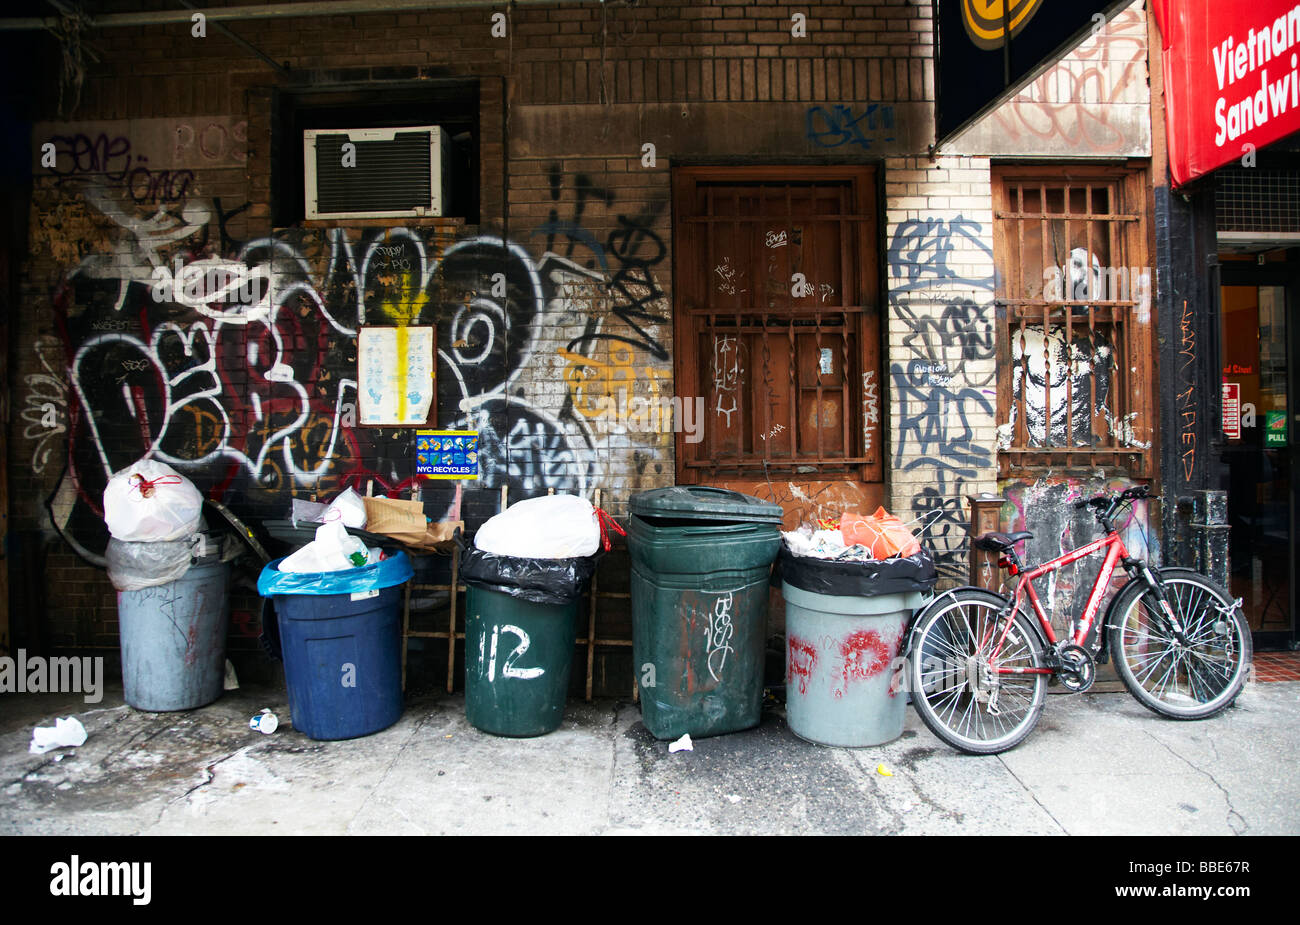 trash cans on street corner, New York - Stock Image